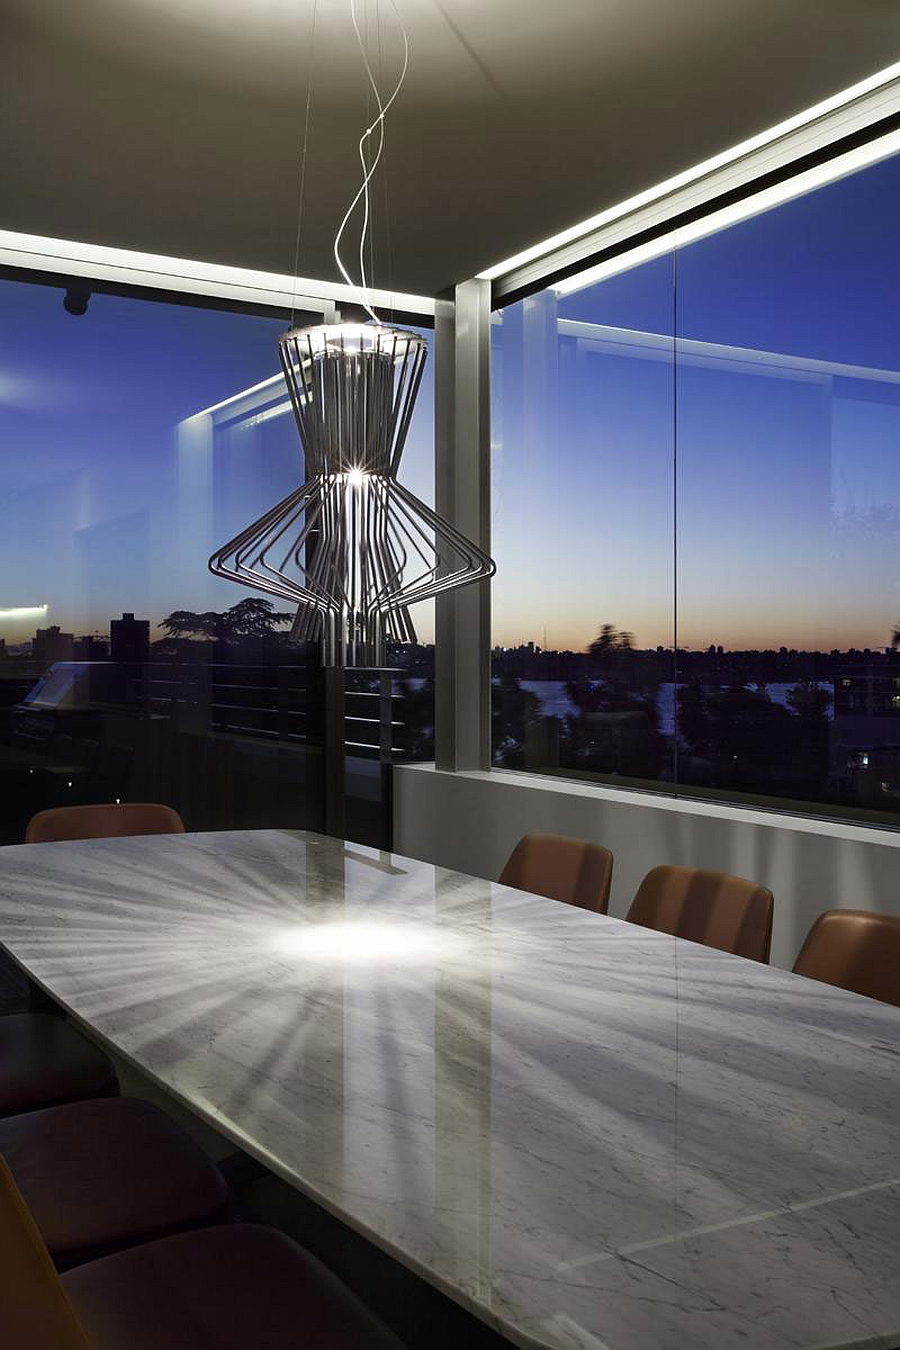 Snazzy pendant light above the dining table